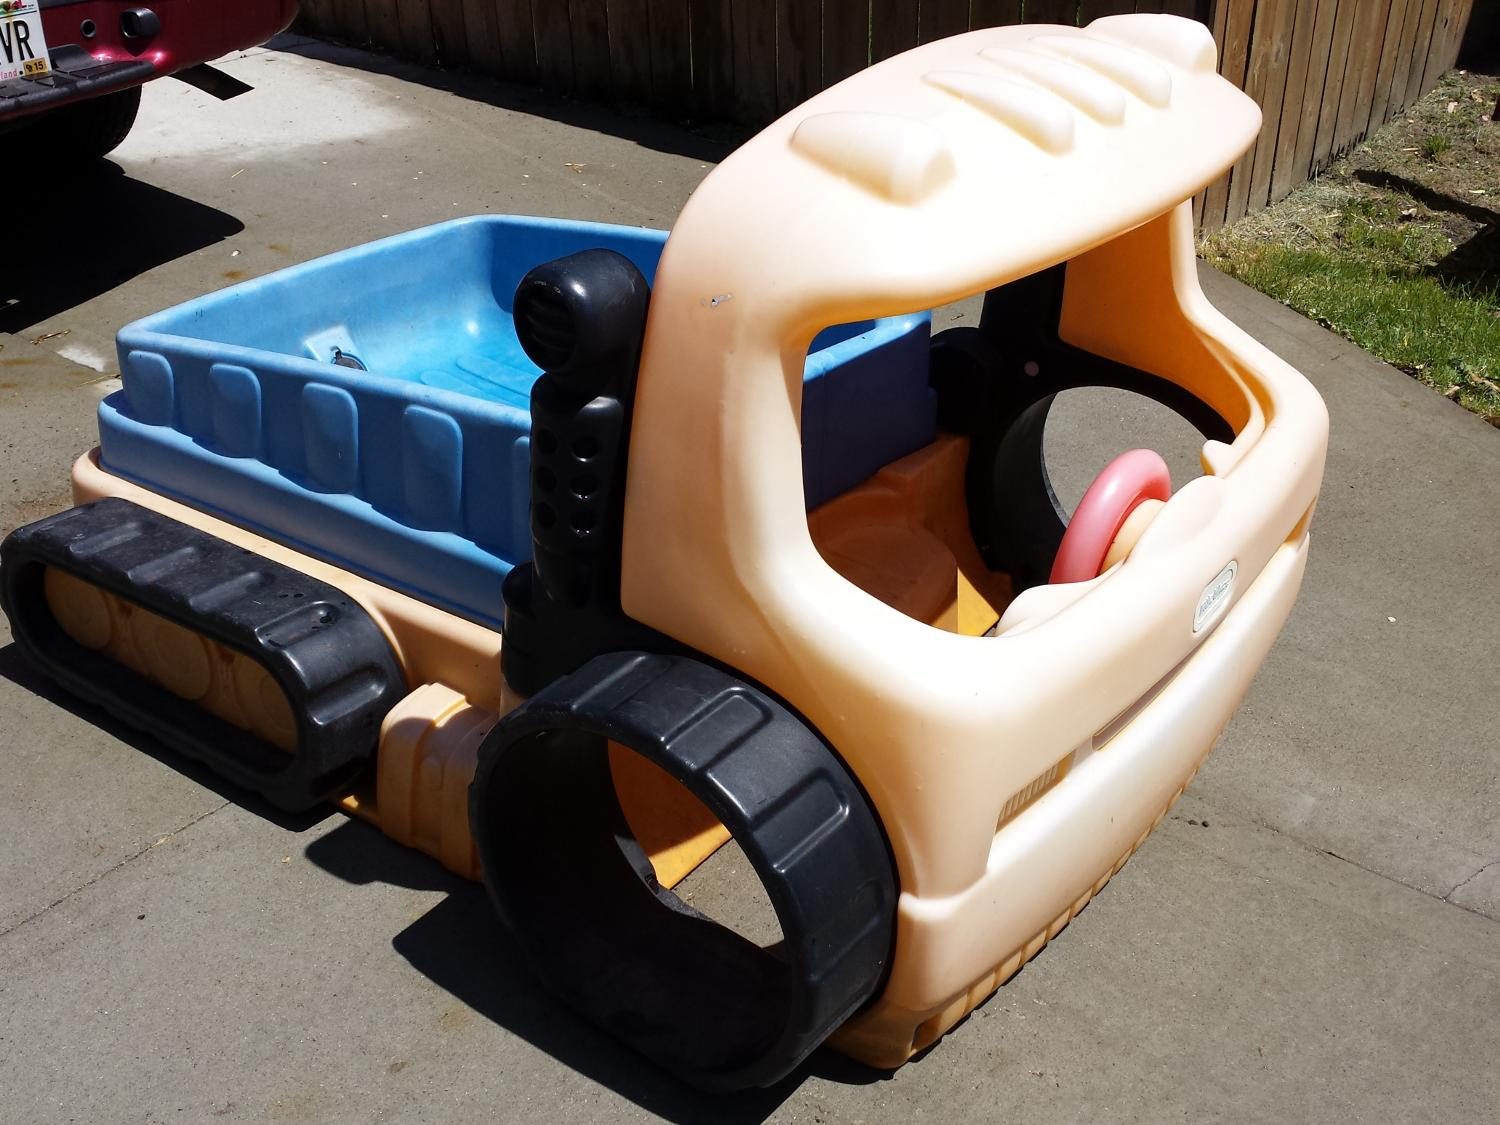 The Brilliant and also Interesting Sandbox Excavator pertaining to Inspire Your own home Provide Household Comfy Desire House. Sandbox Excavator Best Of Little Tikes Truck Sandbox Line Discounts is a part of 38 Lovely Sandbox Excavator pictures gallery.